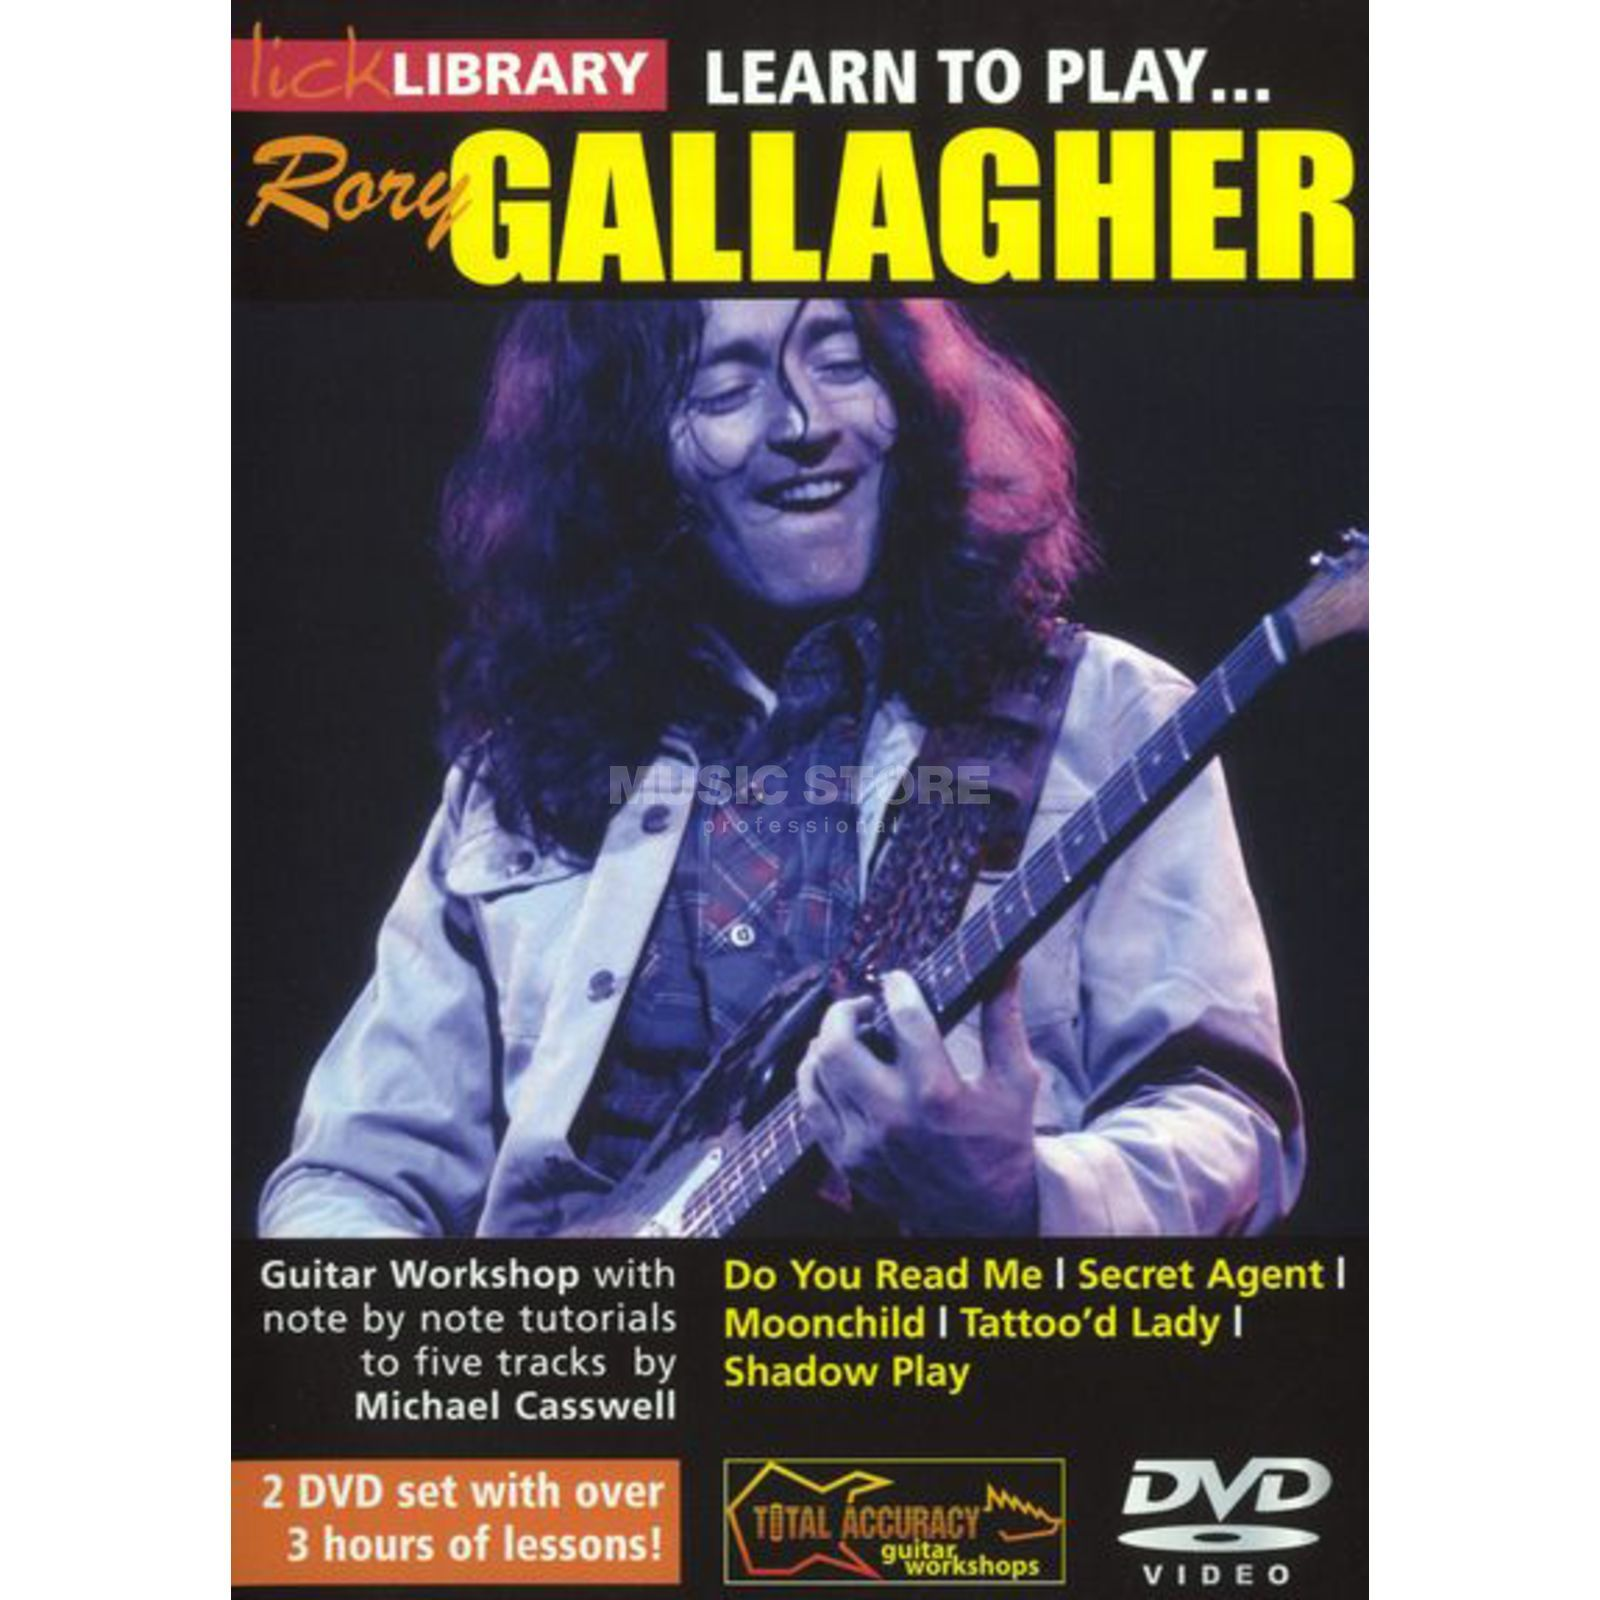 Roadrock International Lick Library: Learn To Play Rory Gallagher DVD Produktbild